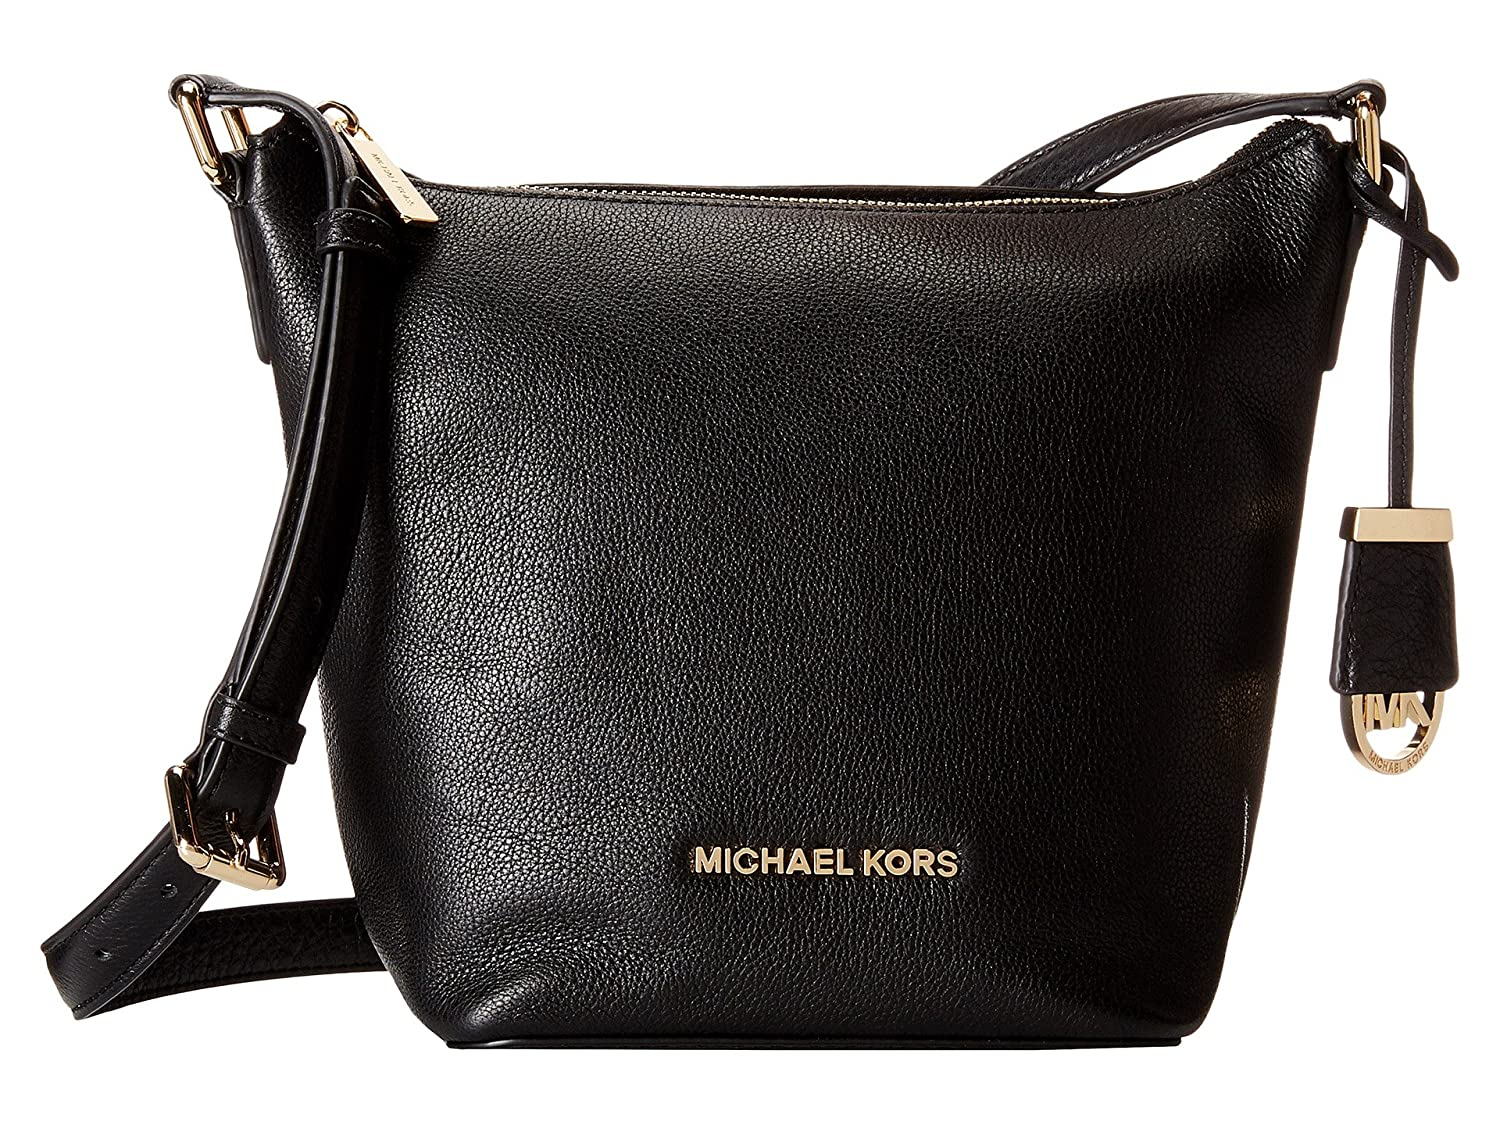 53b27f3d0ba3 michael kors diaper bags baby michael kors wallet amazon uk - Rescue ...